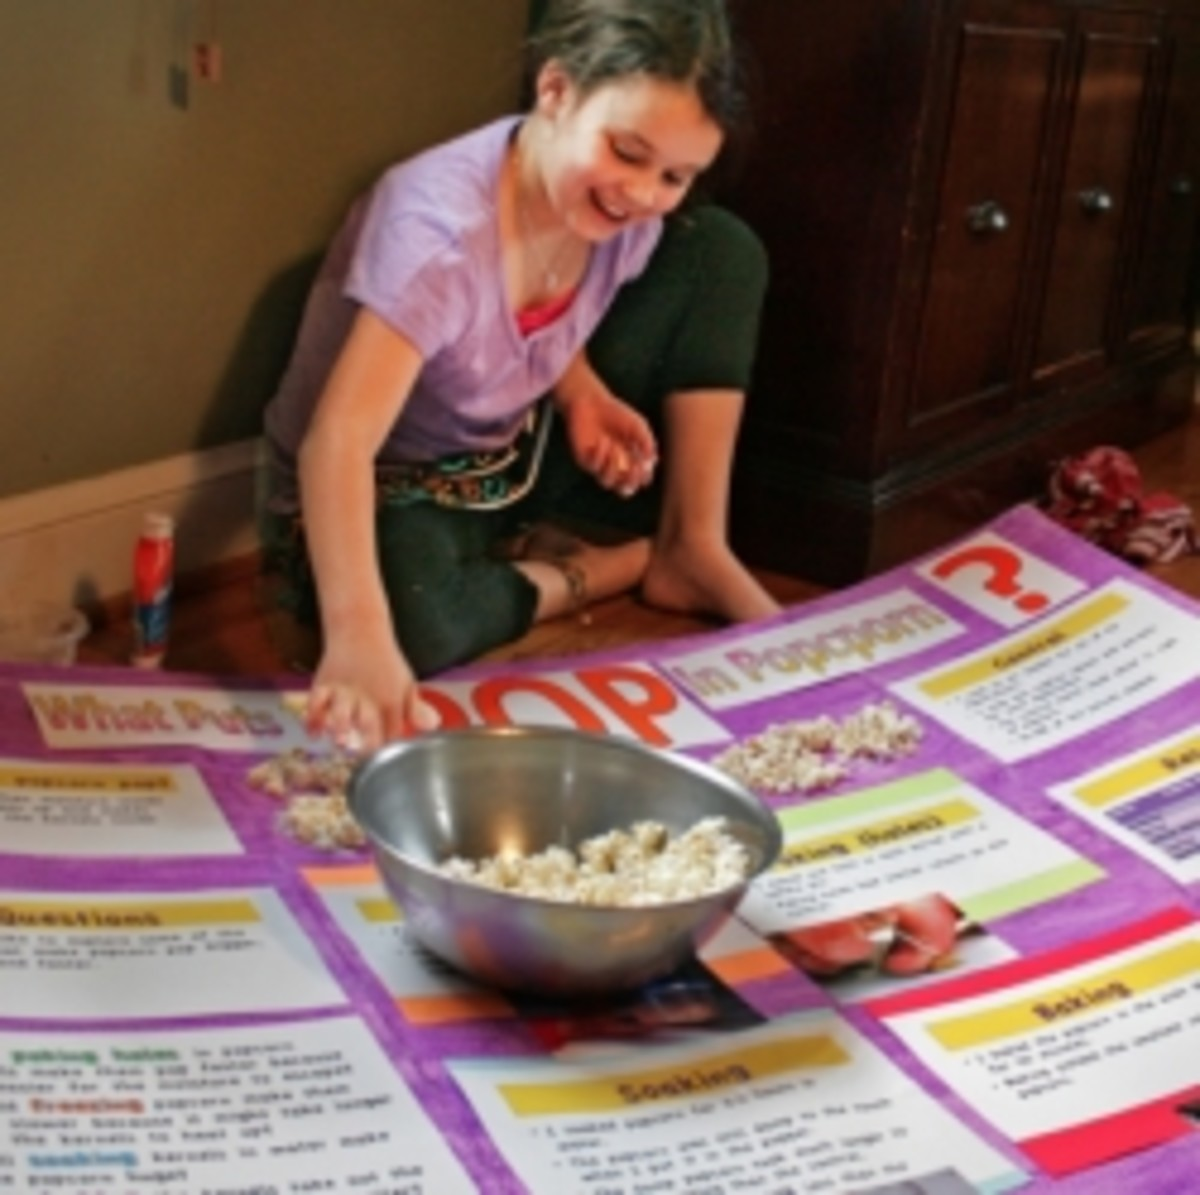 """Image of """"What puts the 'pop' in popcorn?"""" science fair project, courtesy of woodleywonderworks, under Creative Commons 2.0 license."""